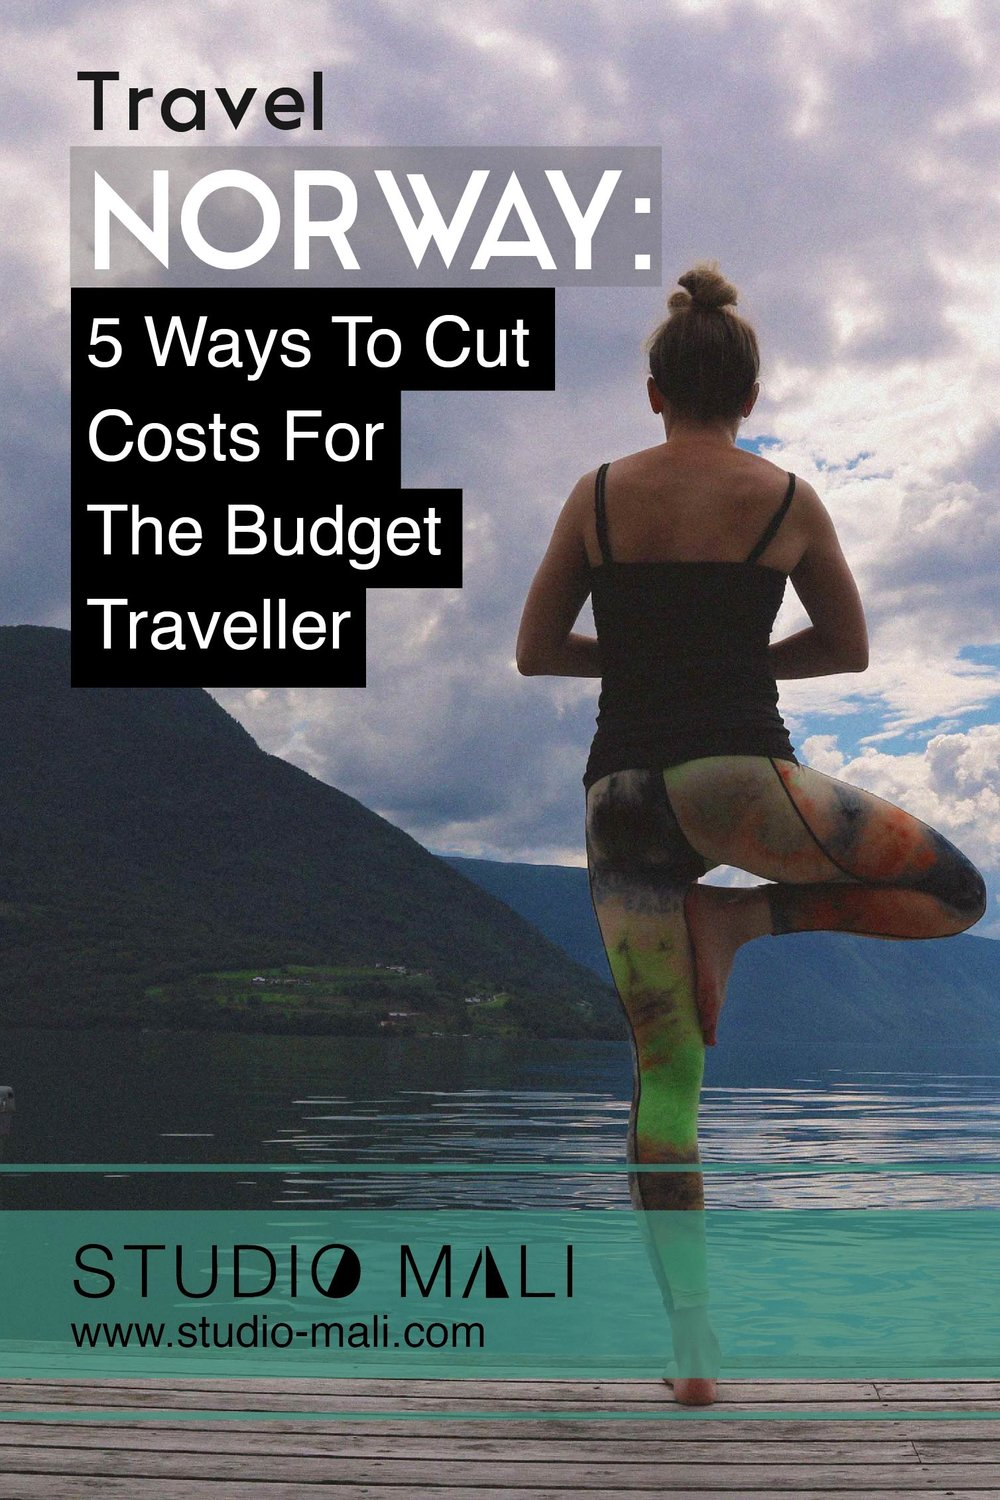 Norway - 5 Ways To Cut Costs For The Budget Traveller, by Studio Mali